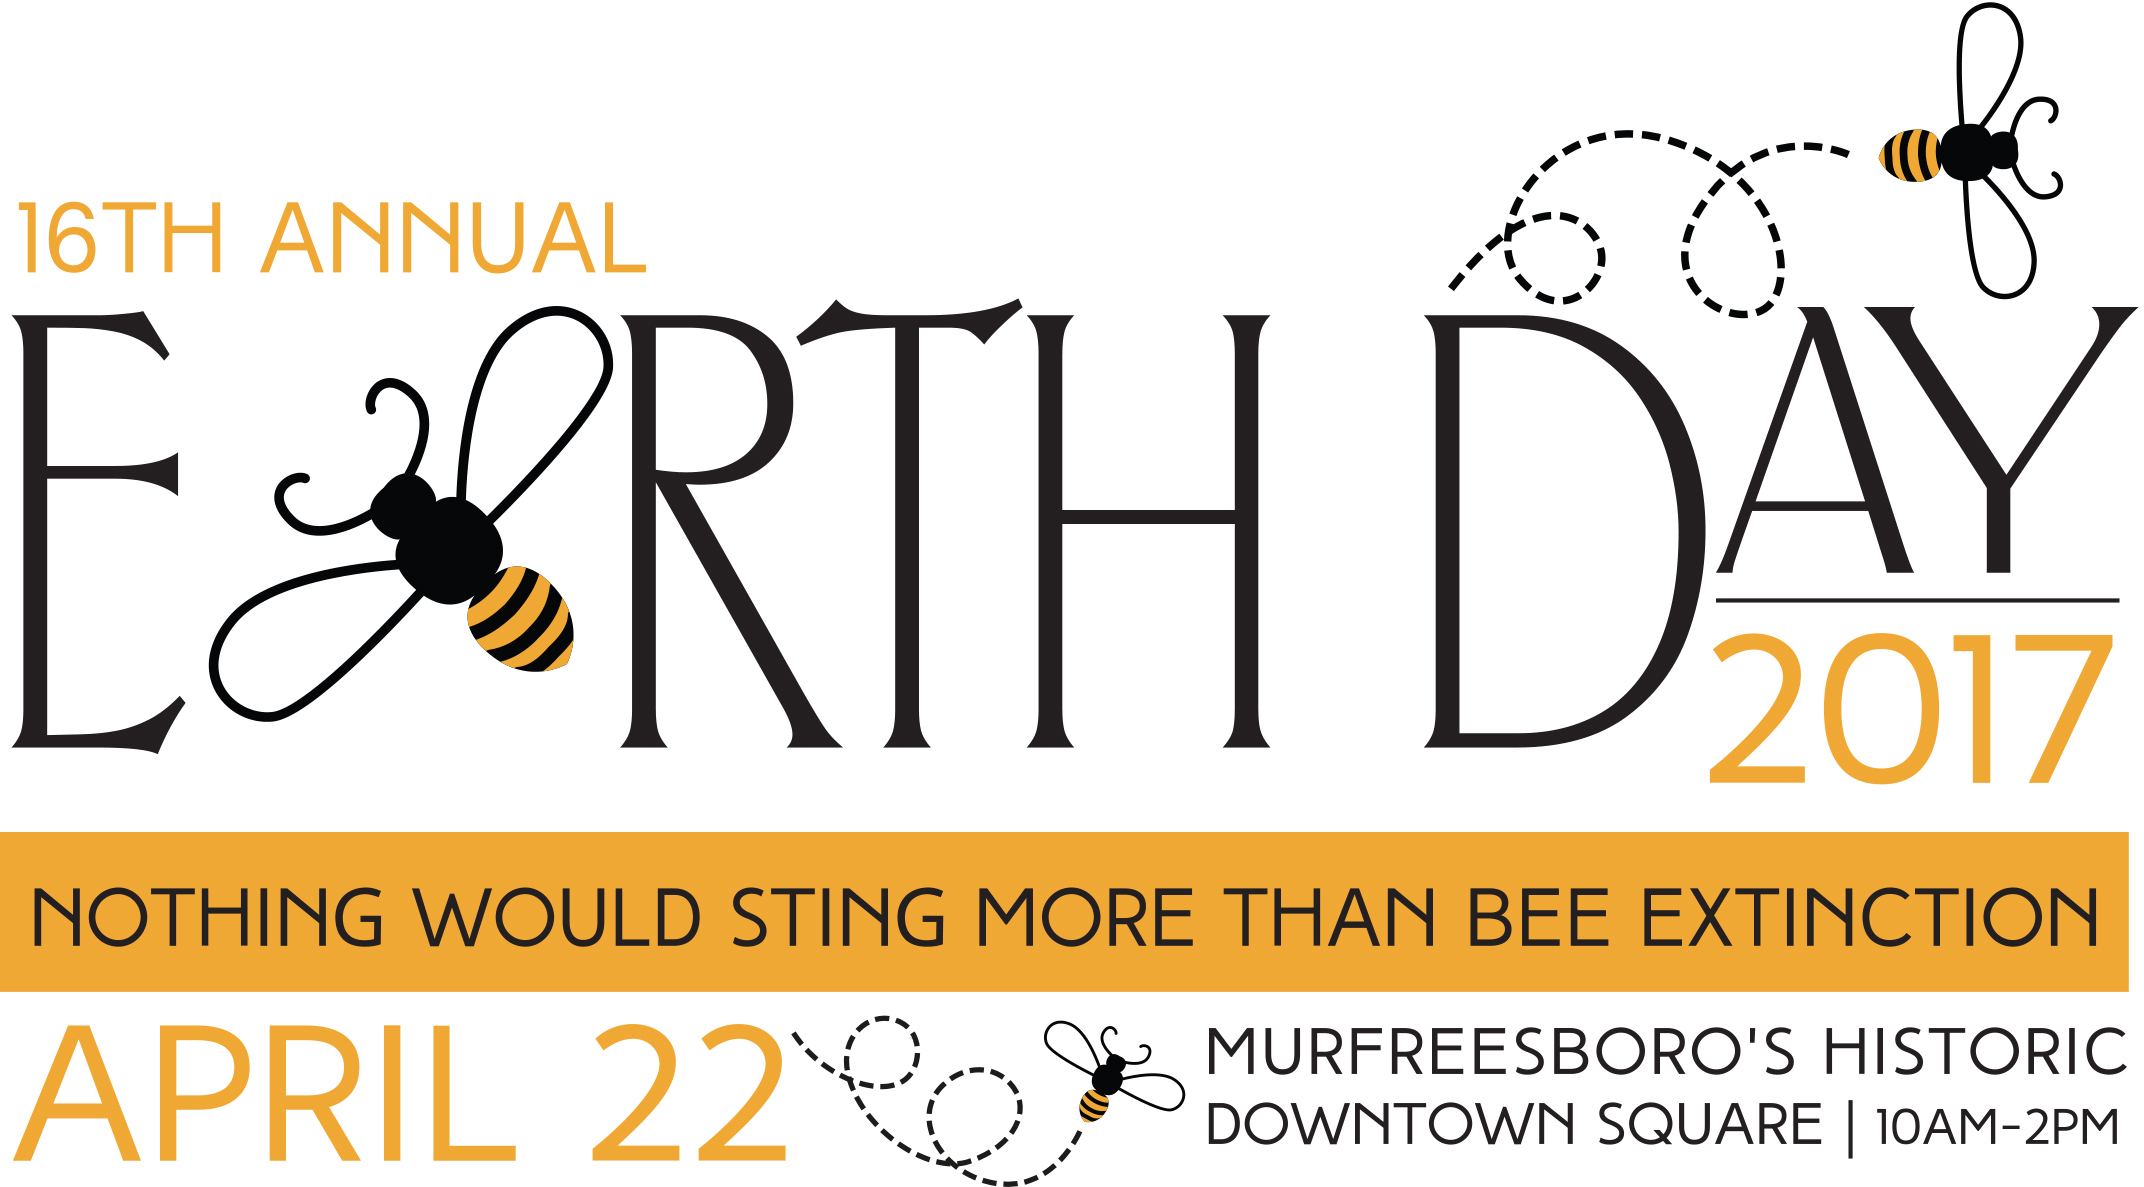 Earth Day Celebration on Murfreesboro Square